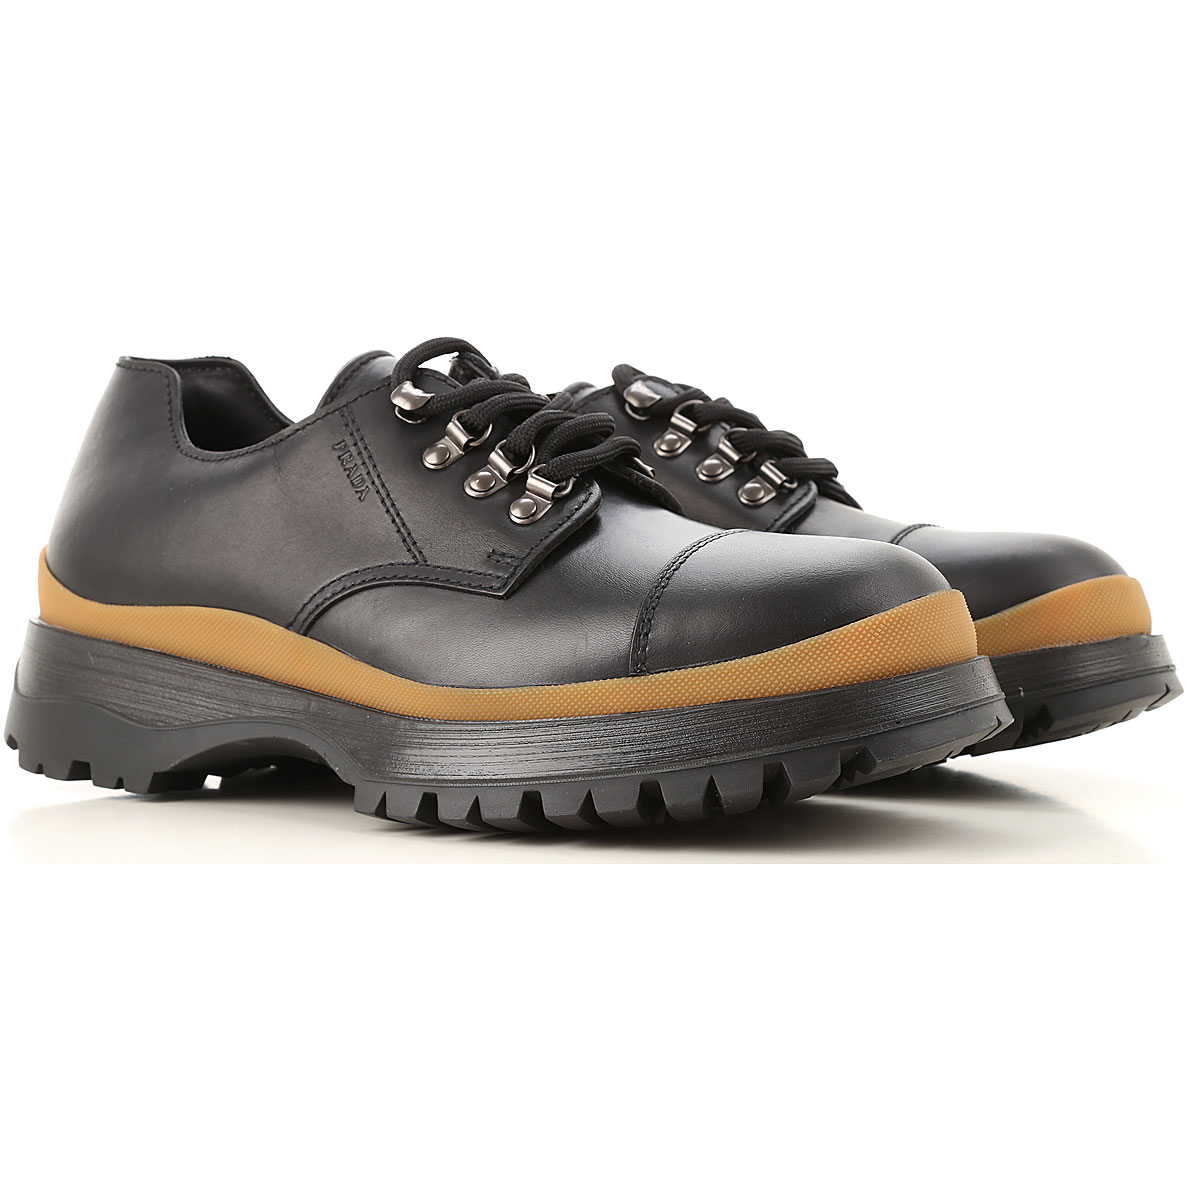 Prada Lace Up Shoes for Men Oxfords Derbies and Brogues On Sale - GOOFASH